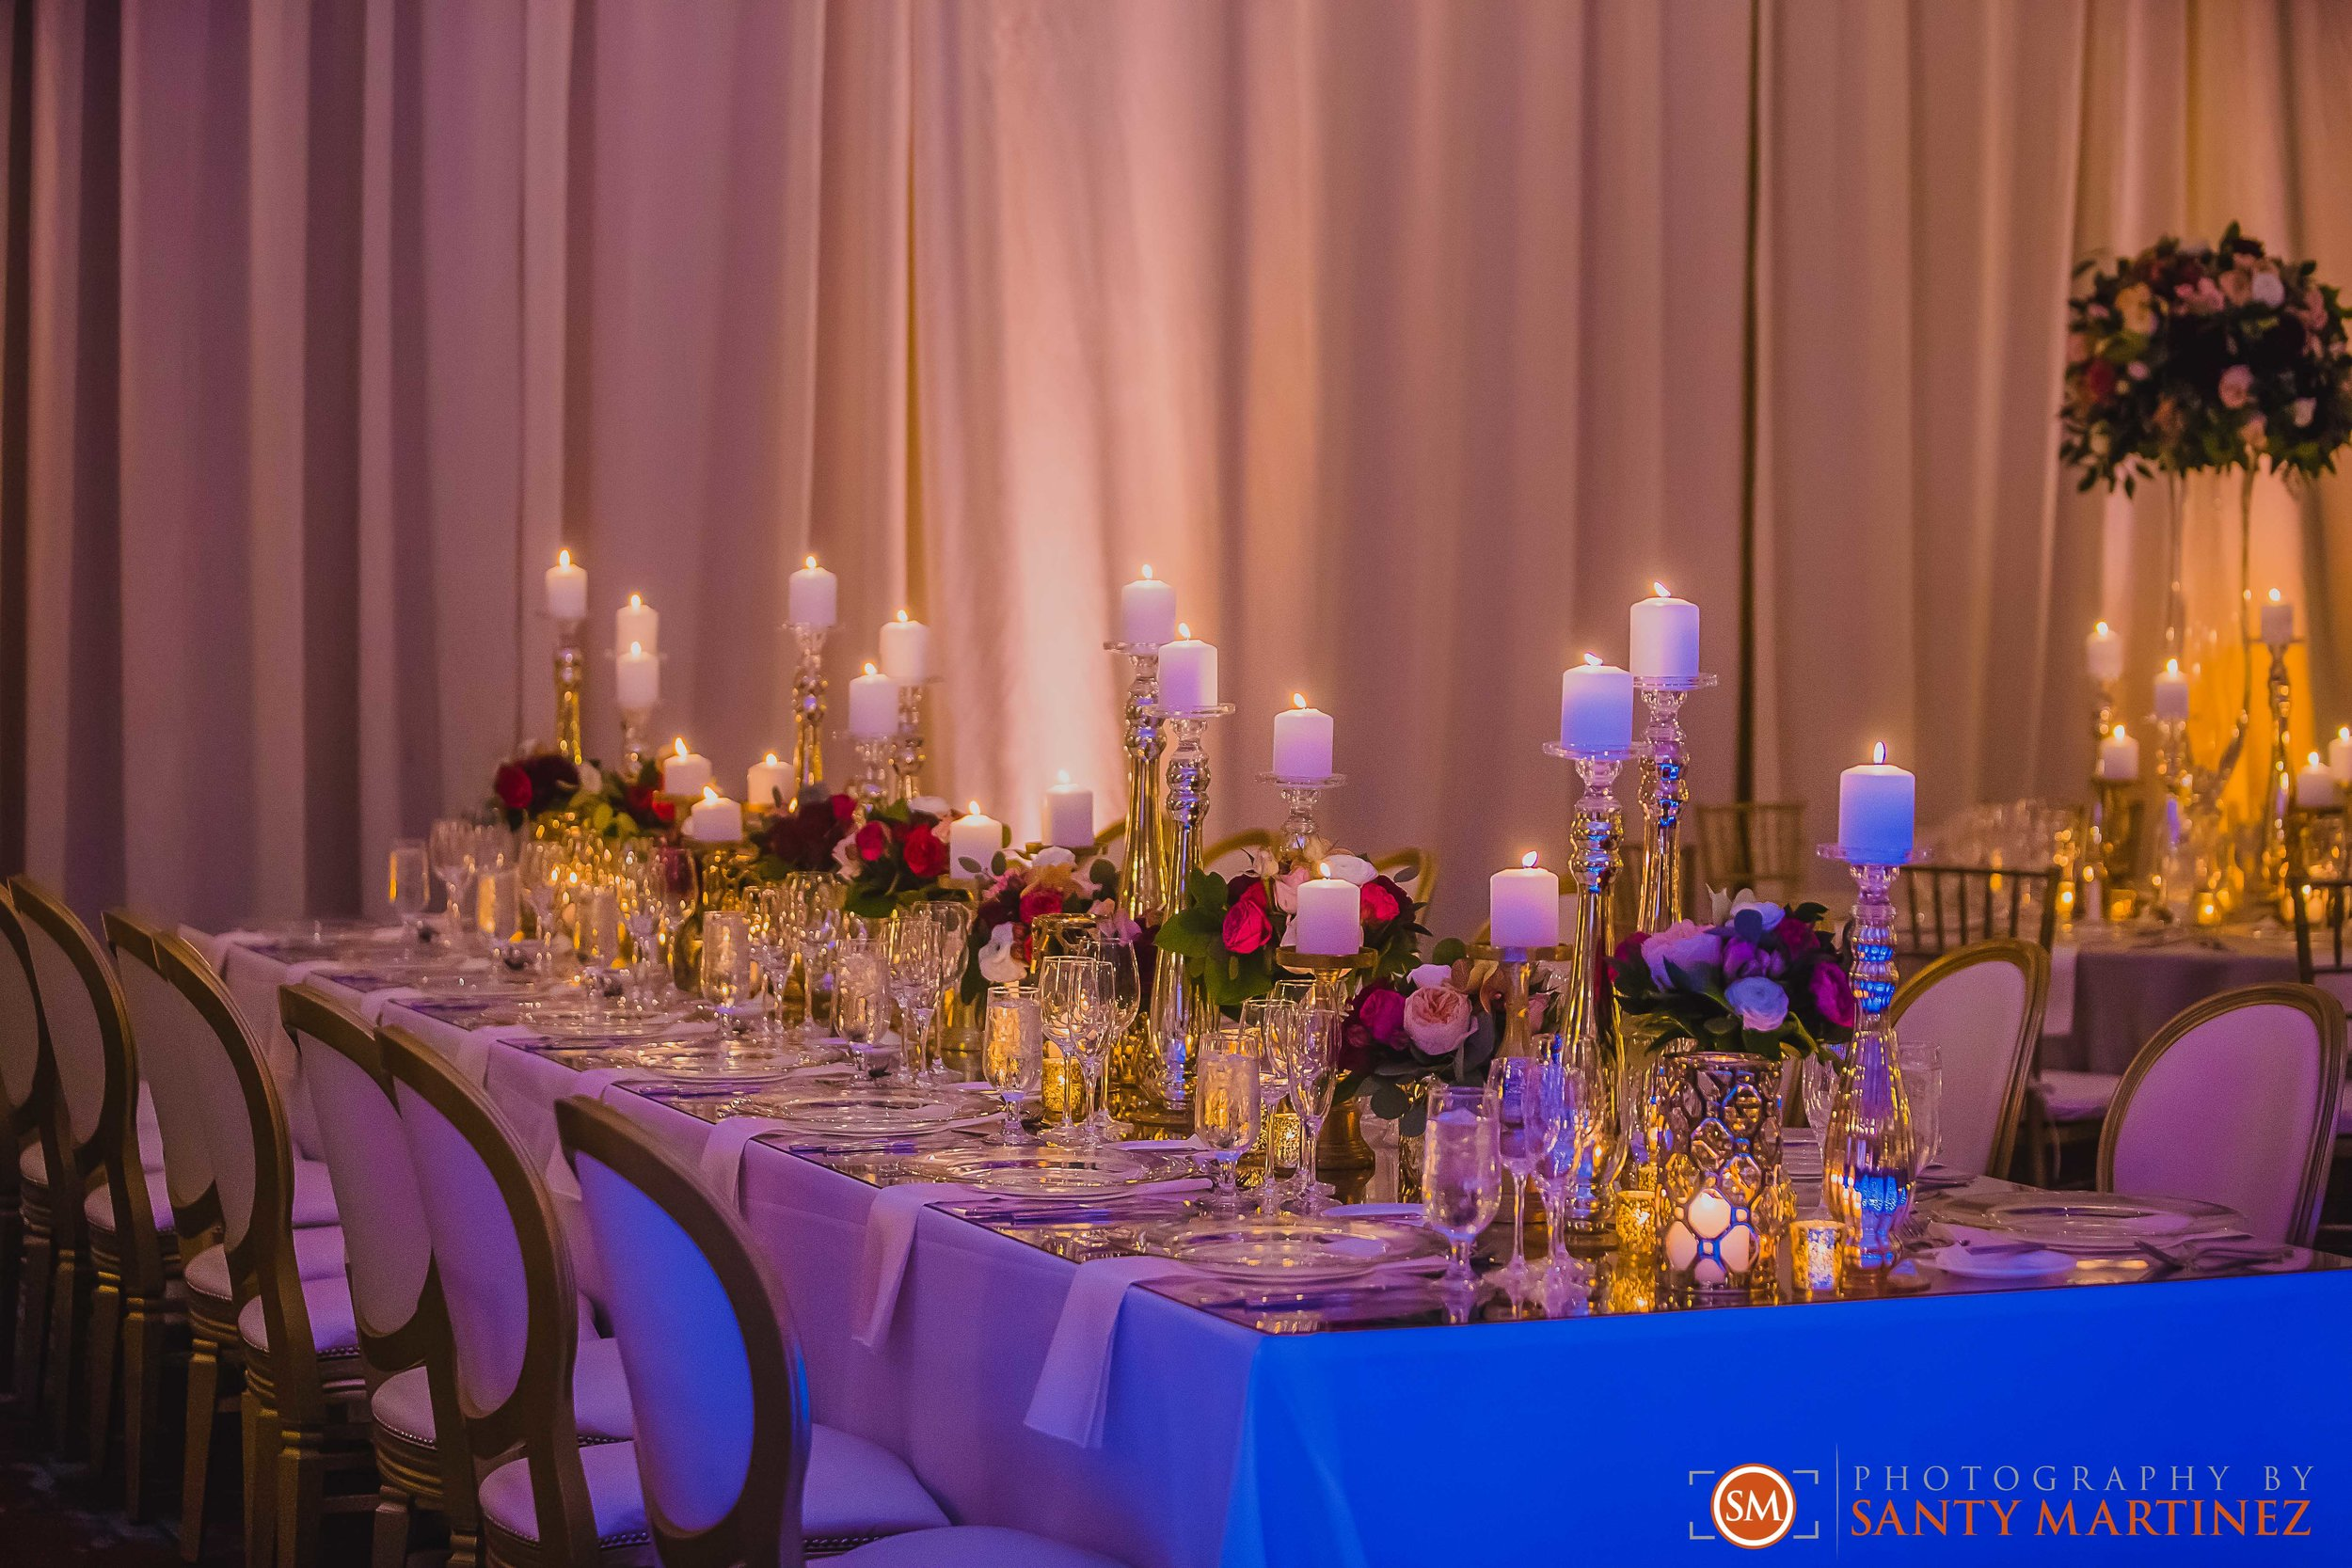 Wedding Ritz Carlton Coconut Grove - Santy Martinez-23.jpg